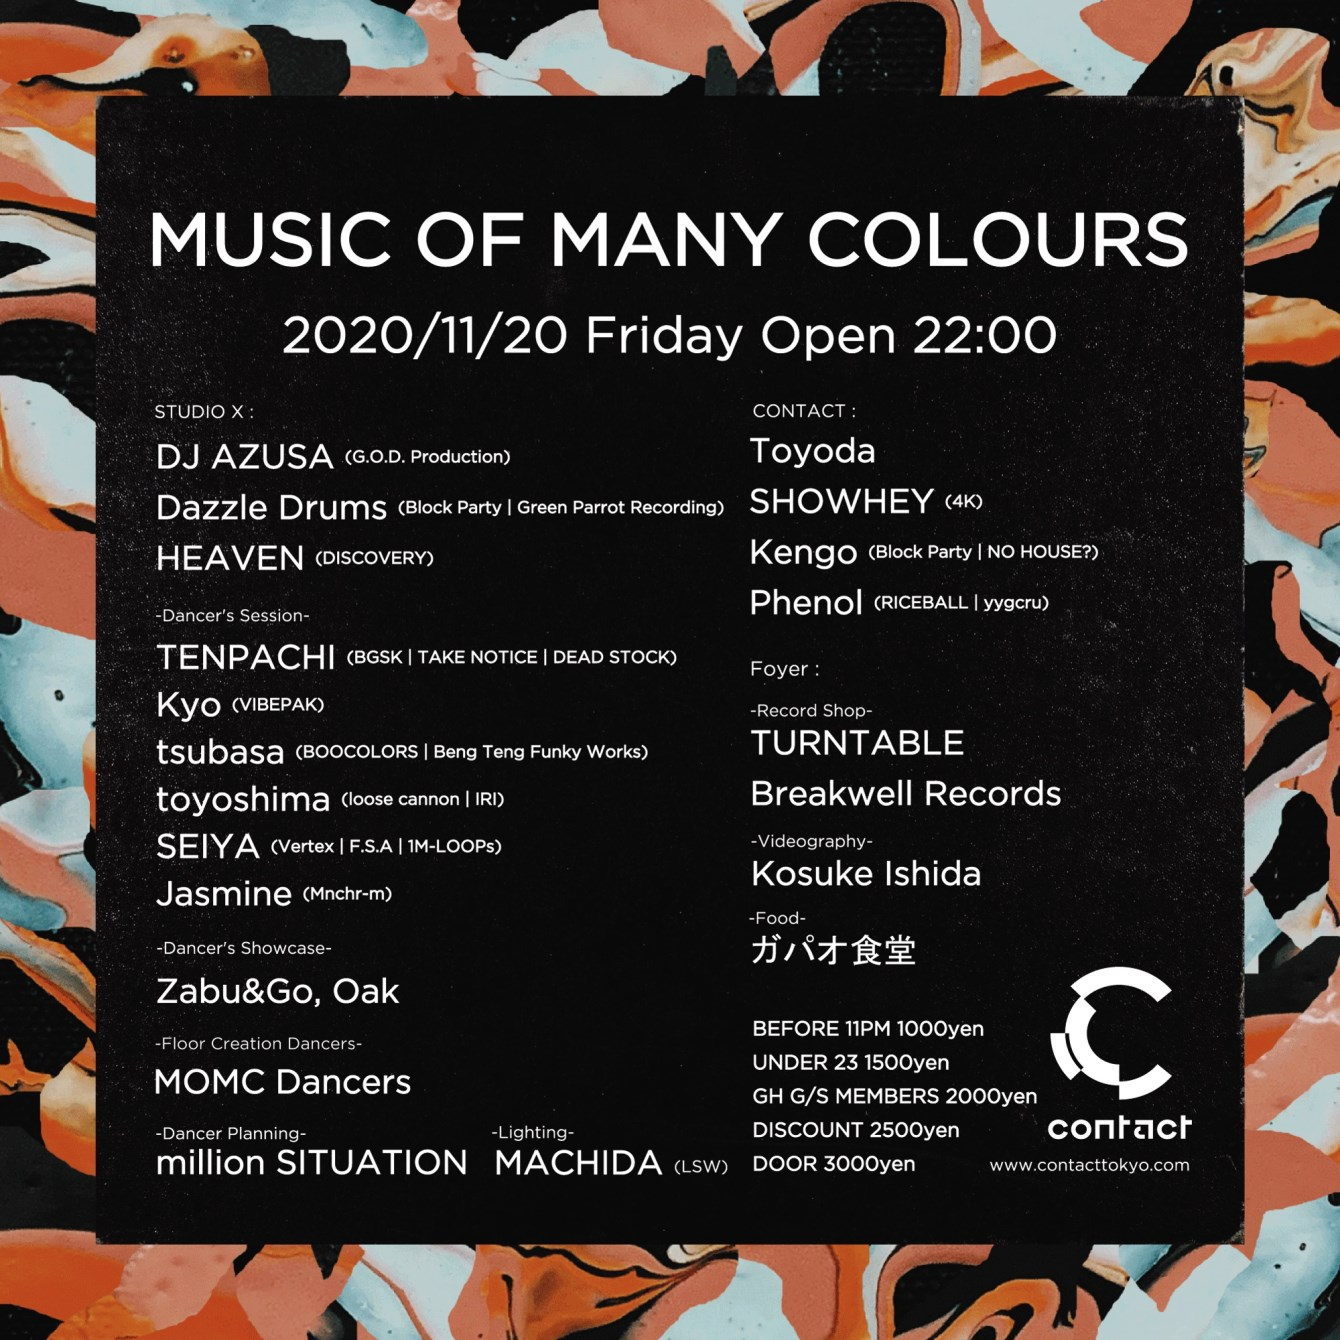 Music Of Many Colours - Flyer front